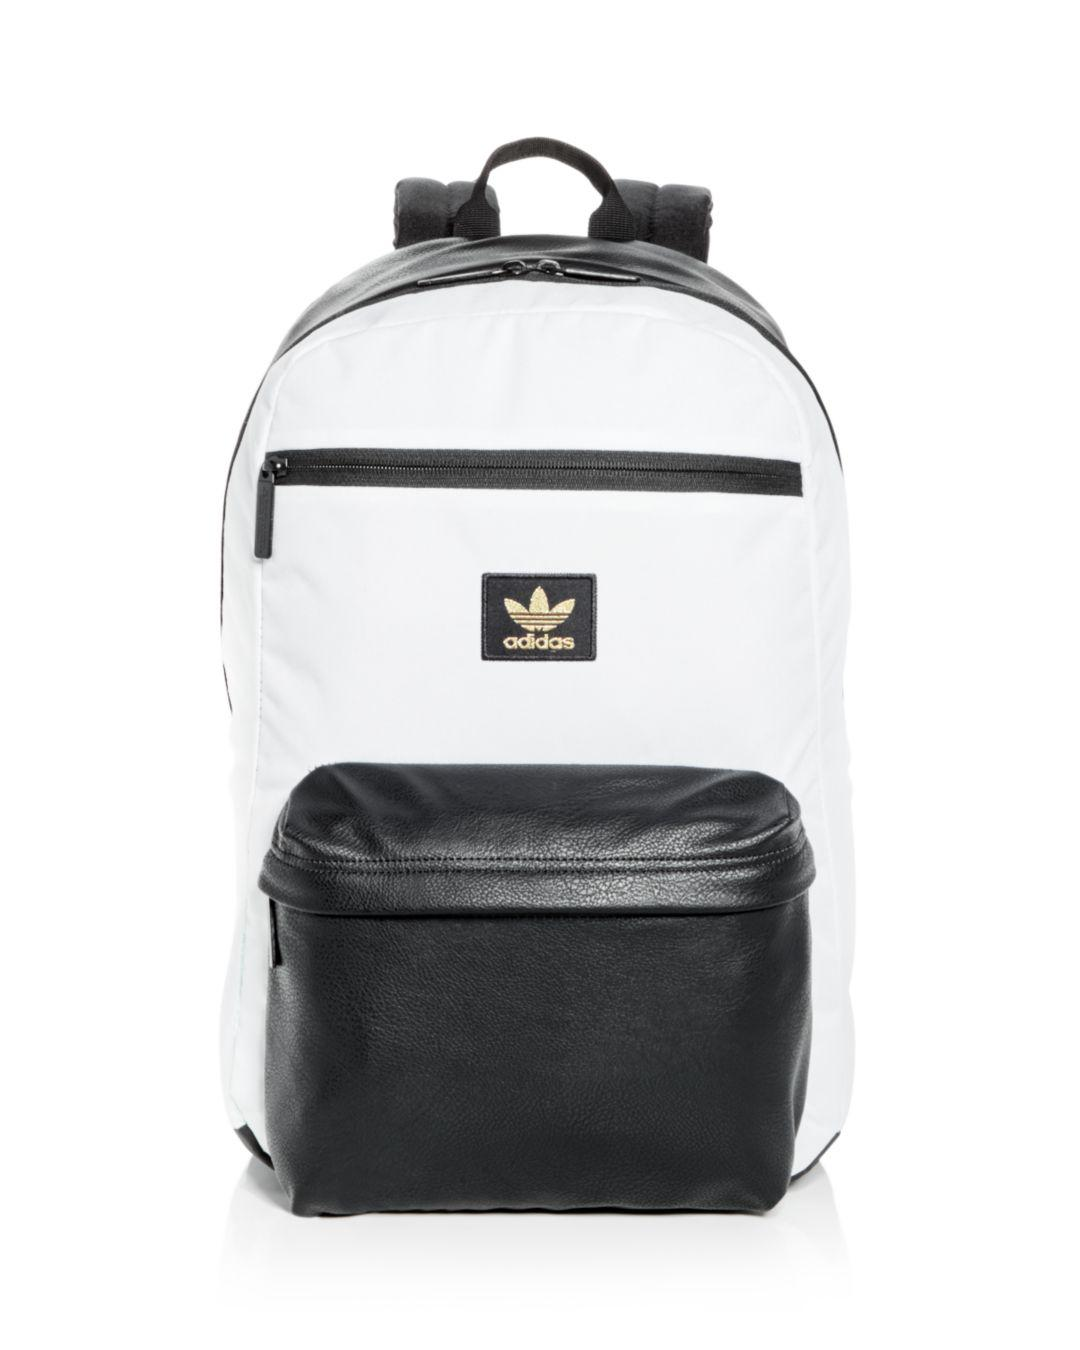 Adidas - Black Originals National Plus Backpack for Men - Lyst. View  fullscreen 2f23384646bff